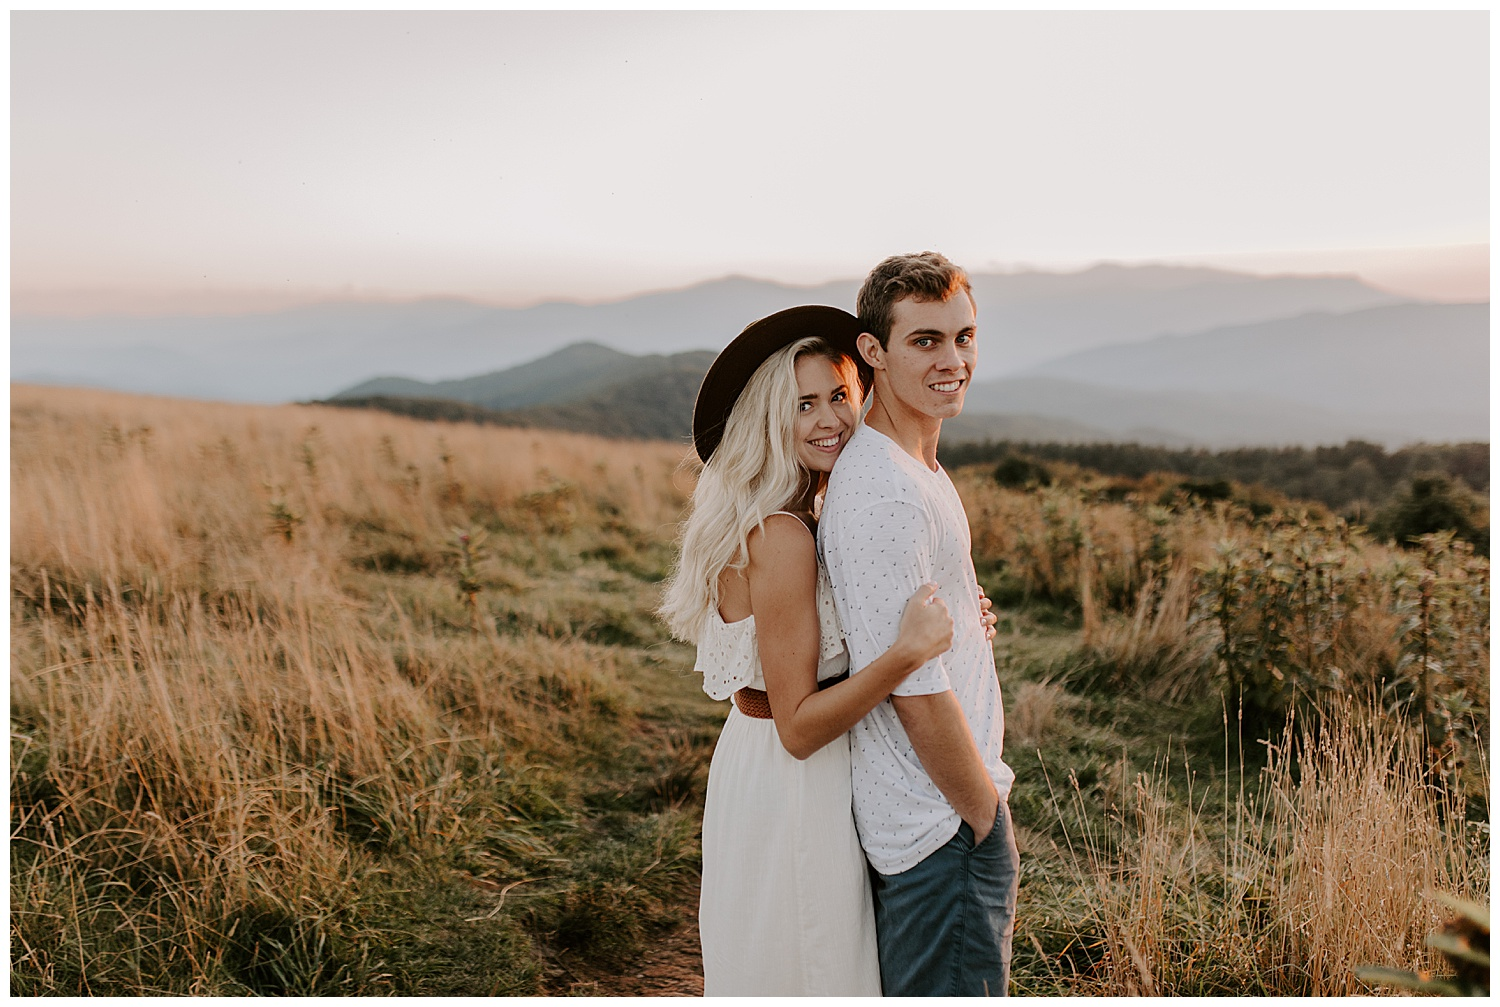 HANNAH_NICK_MAXPATCH_ENGAGEMENT2019-09-05_0028.jpg